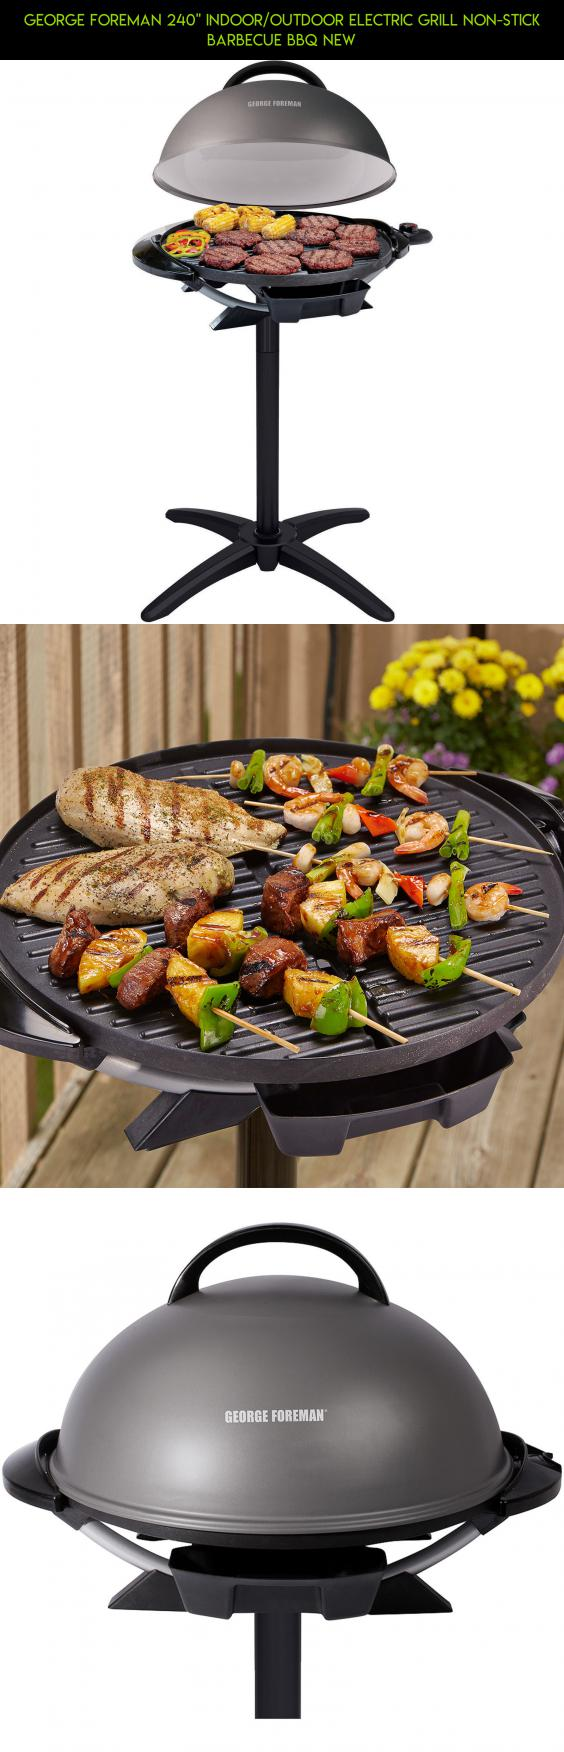 George Foreman 240 Indoor Outdoor Electric BBQ Grill Non Stick Barbecue BBQ